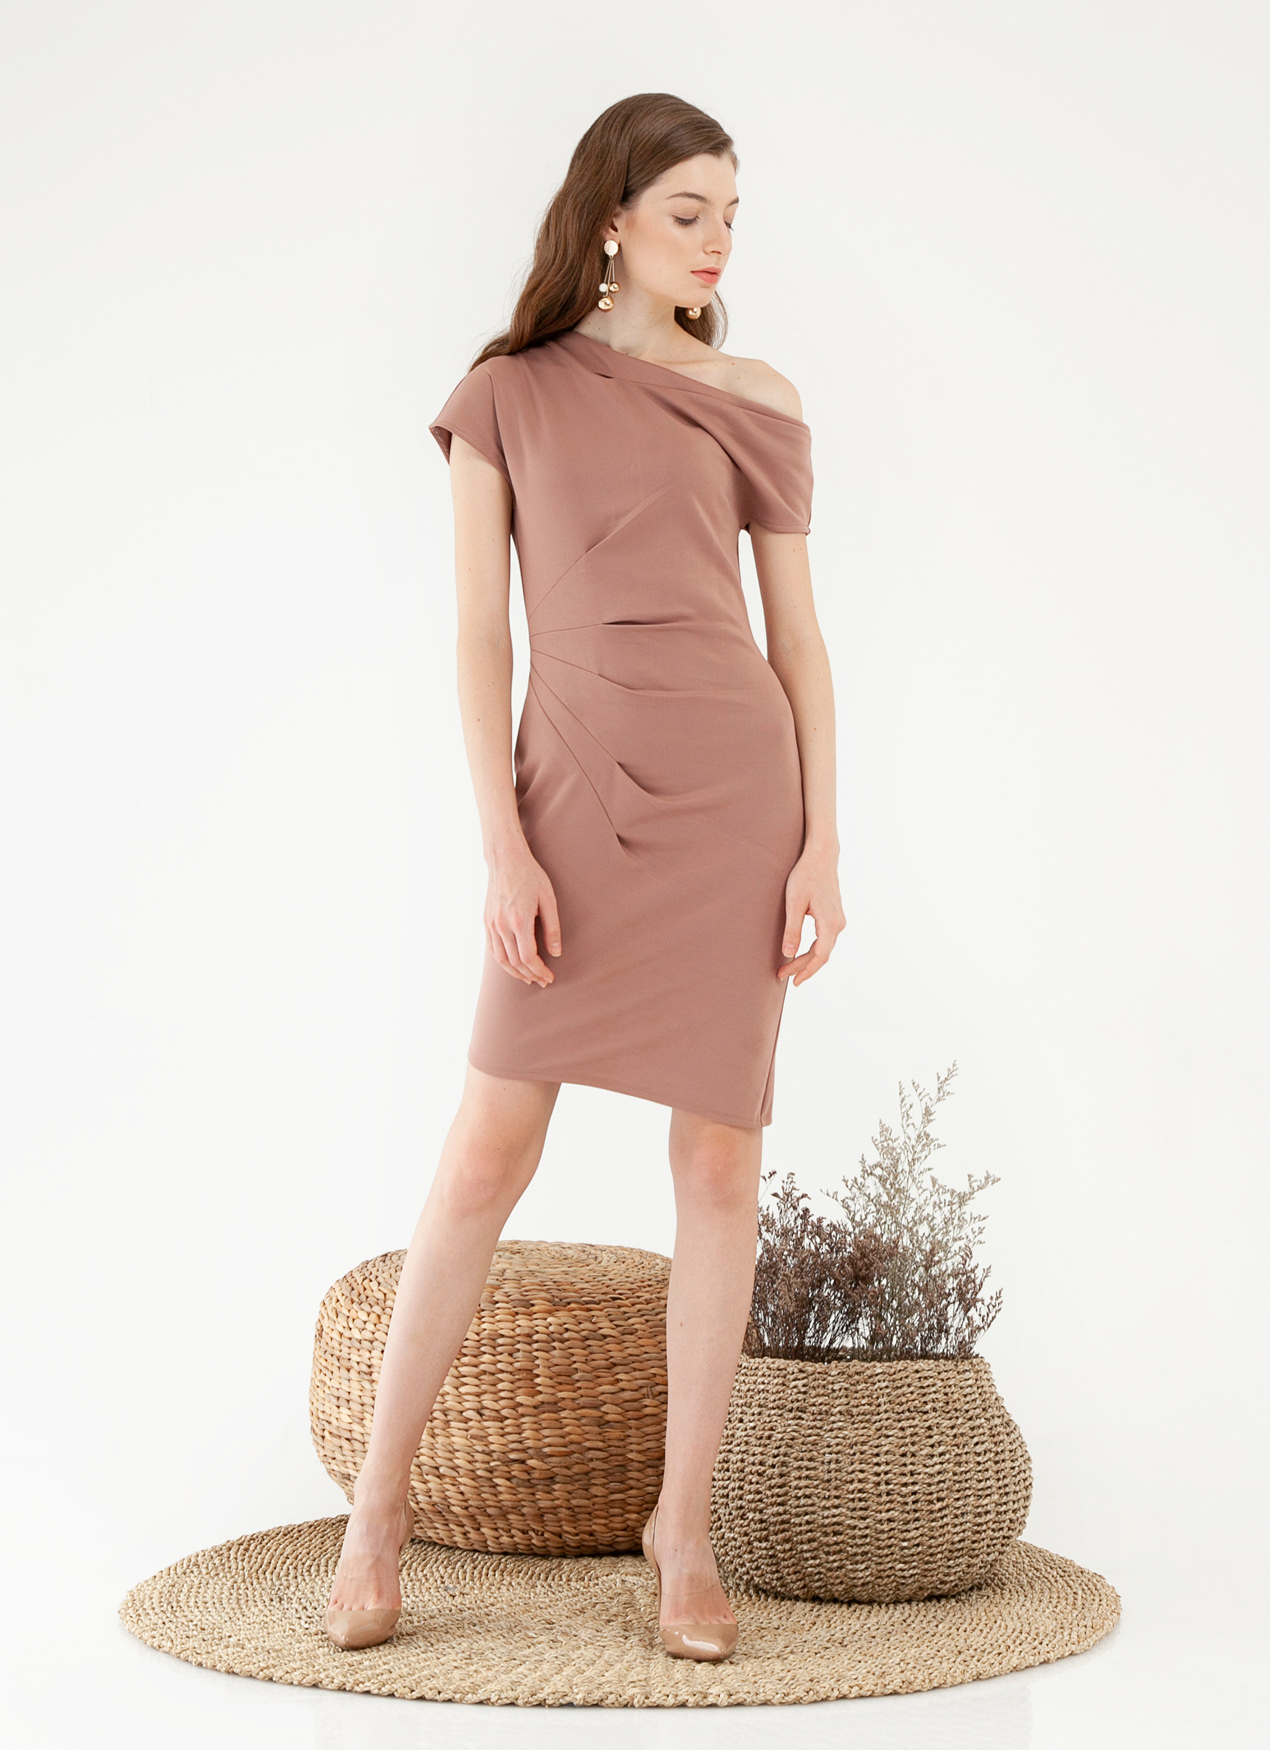 CLOTH INC Micah Pleat Dress - Clay Pink